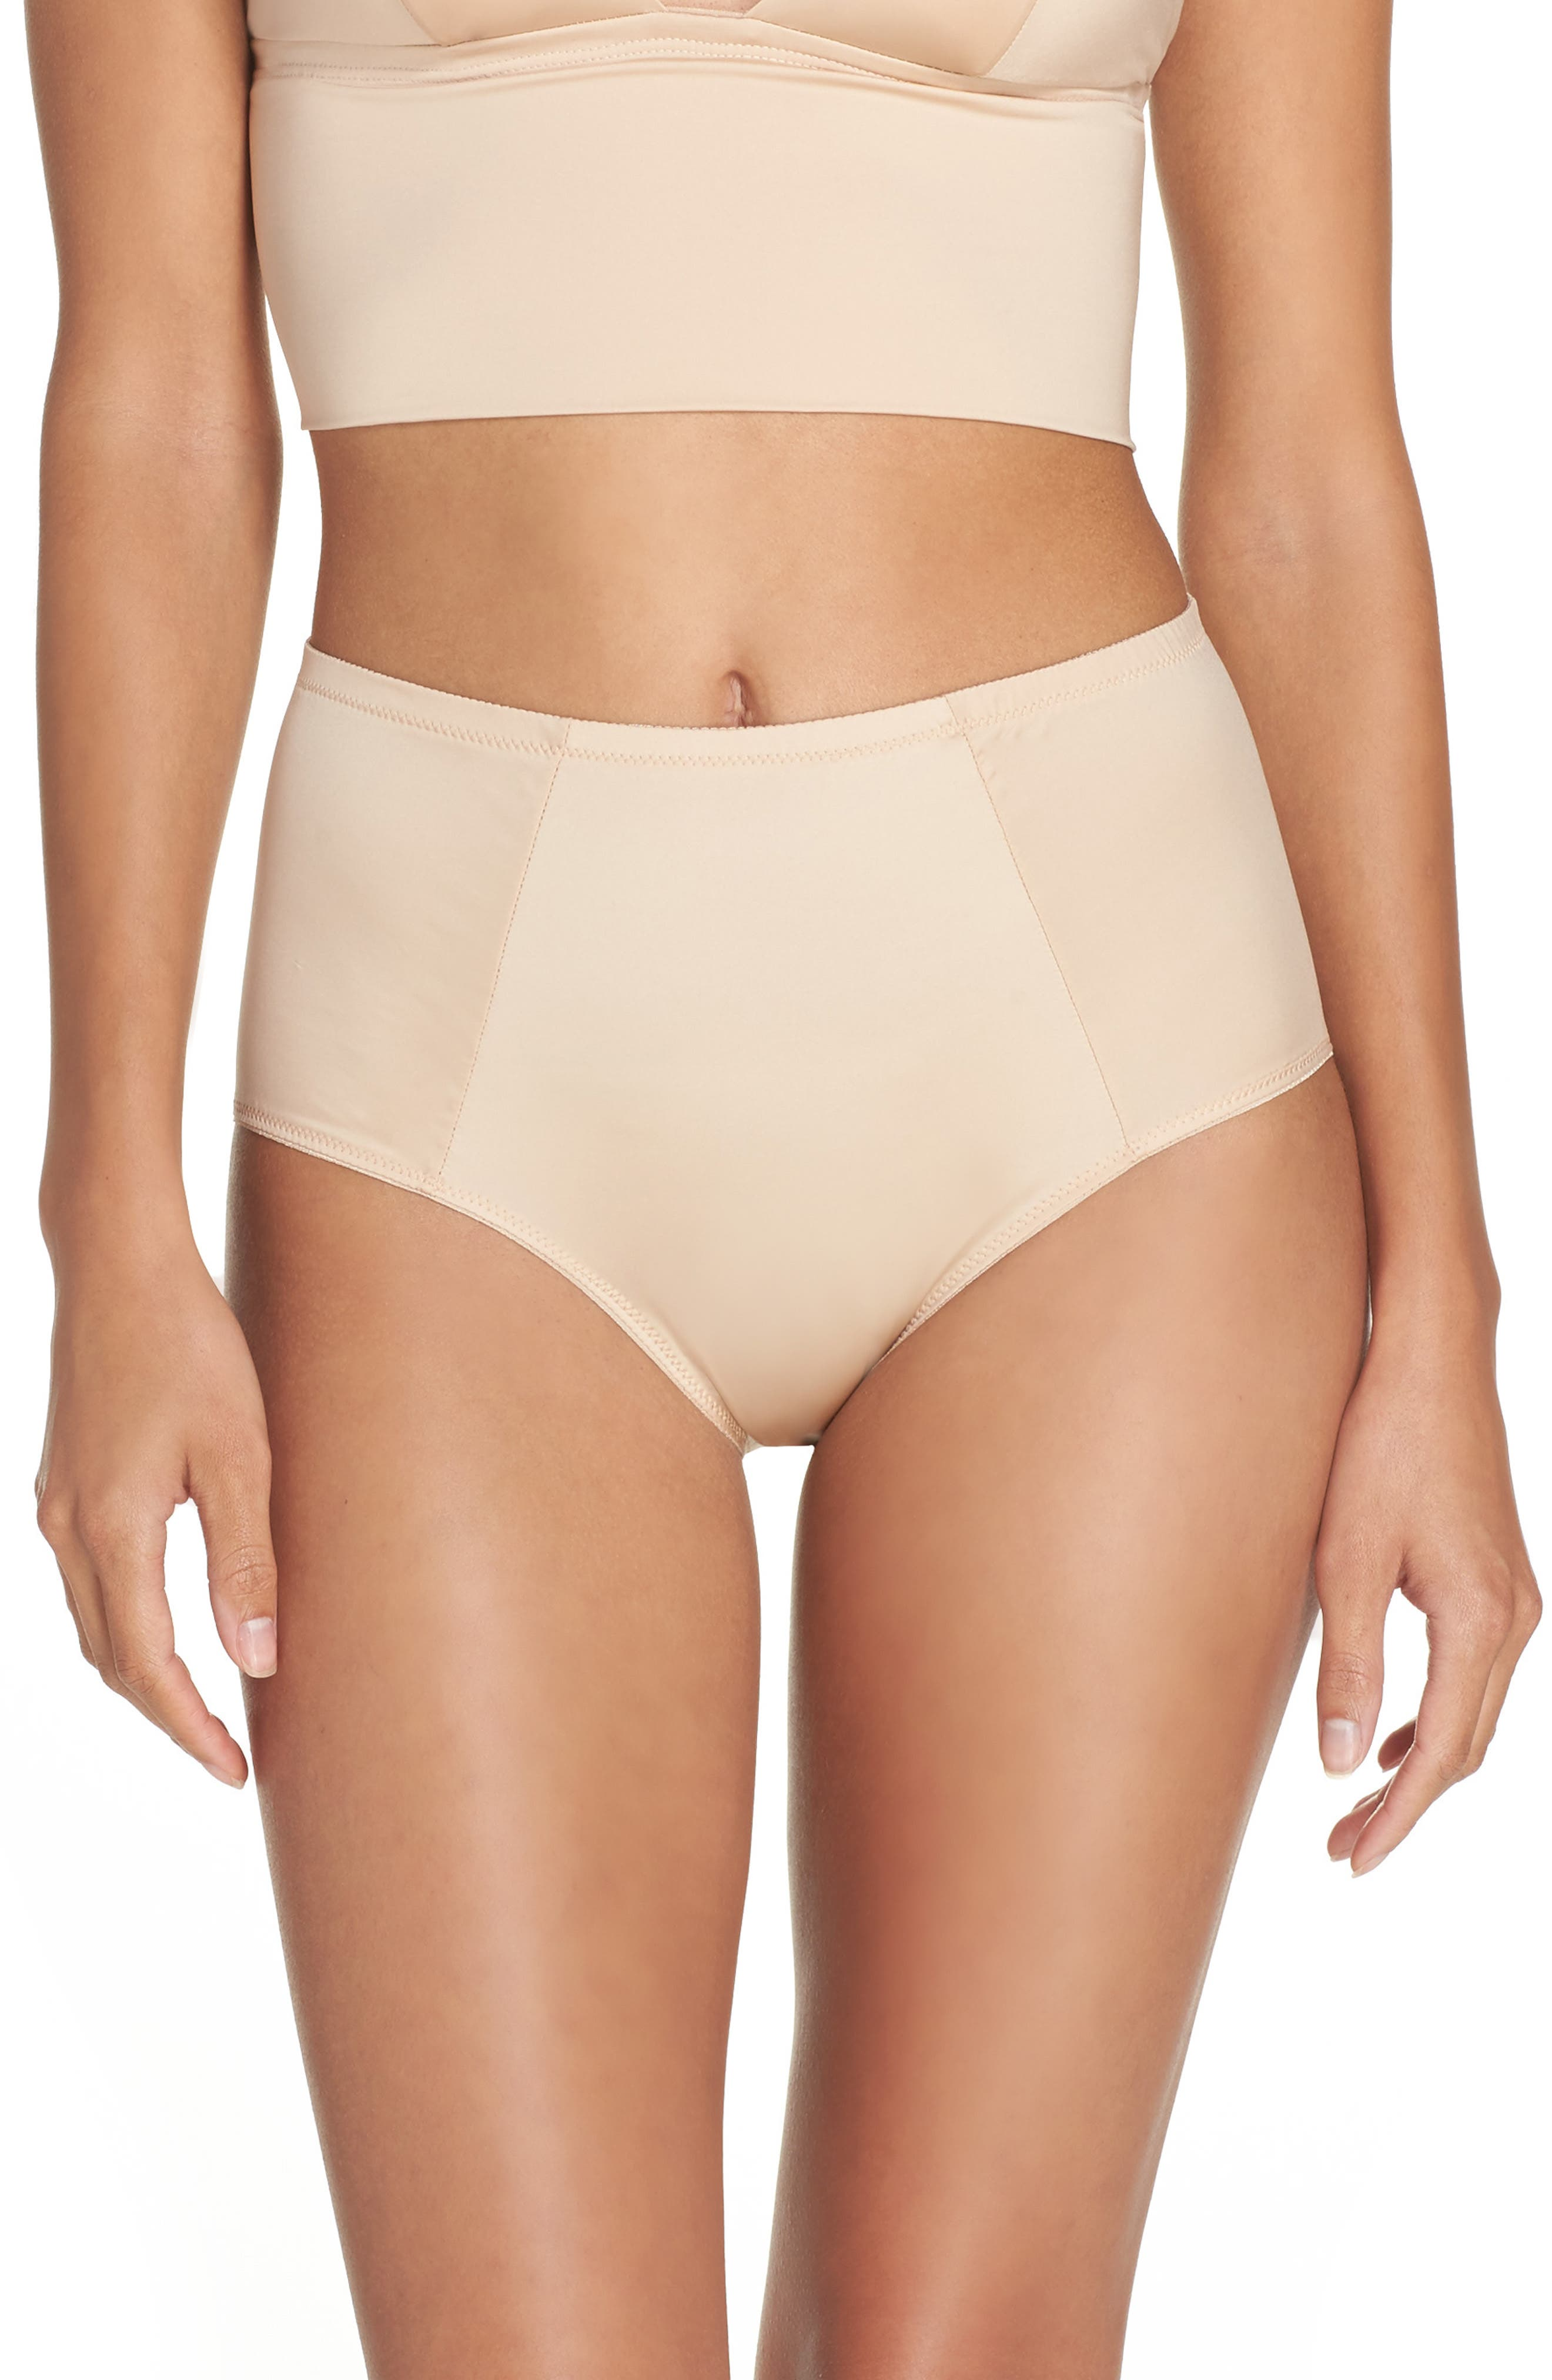 Cosabella Undercover High Waist Briefs